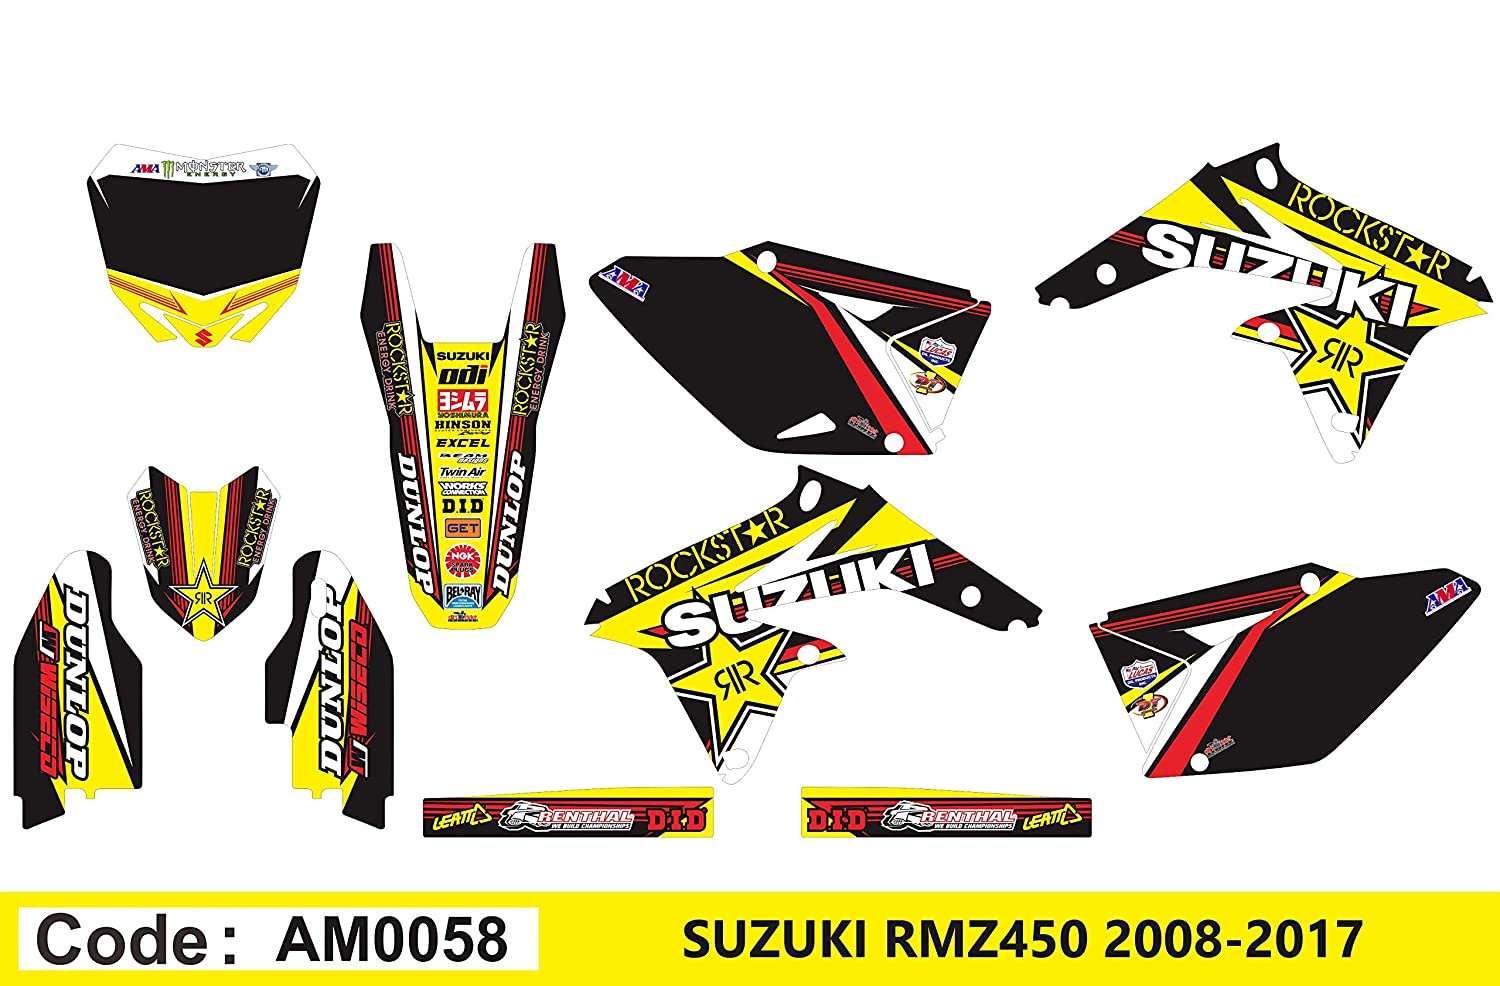 AM0058 SUZUKI RMZ 450 2008-2014'08-14' DECALS STICKERS GRAPHICS KIT Dog Racing Design